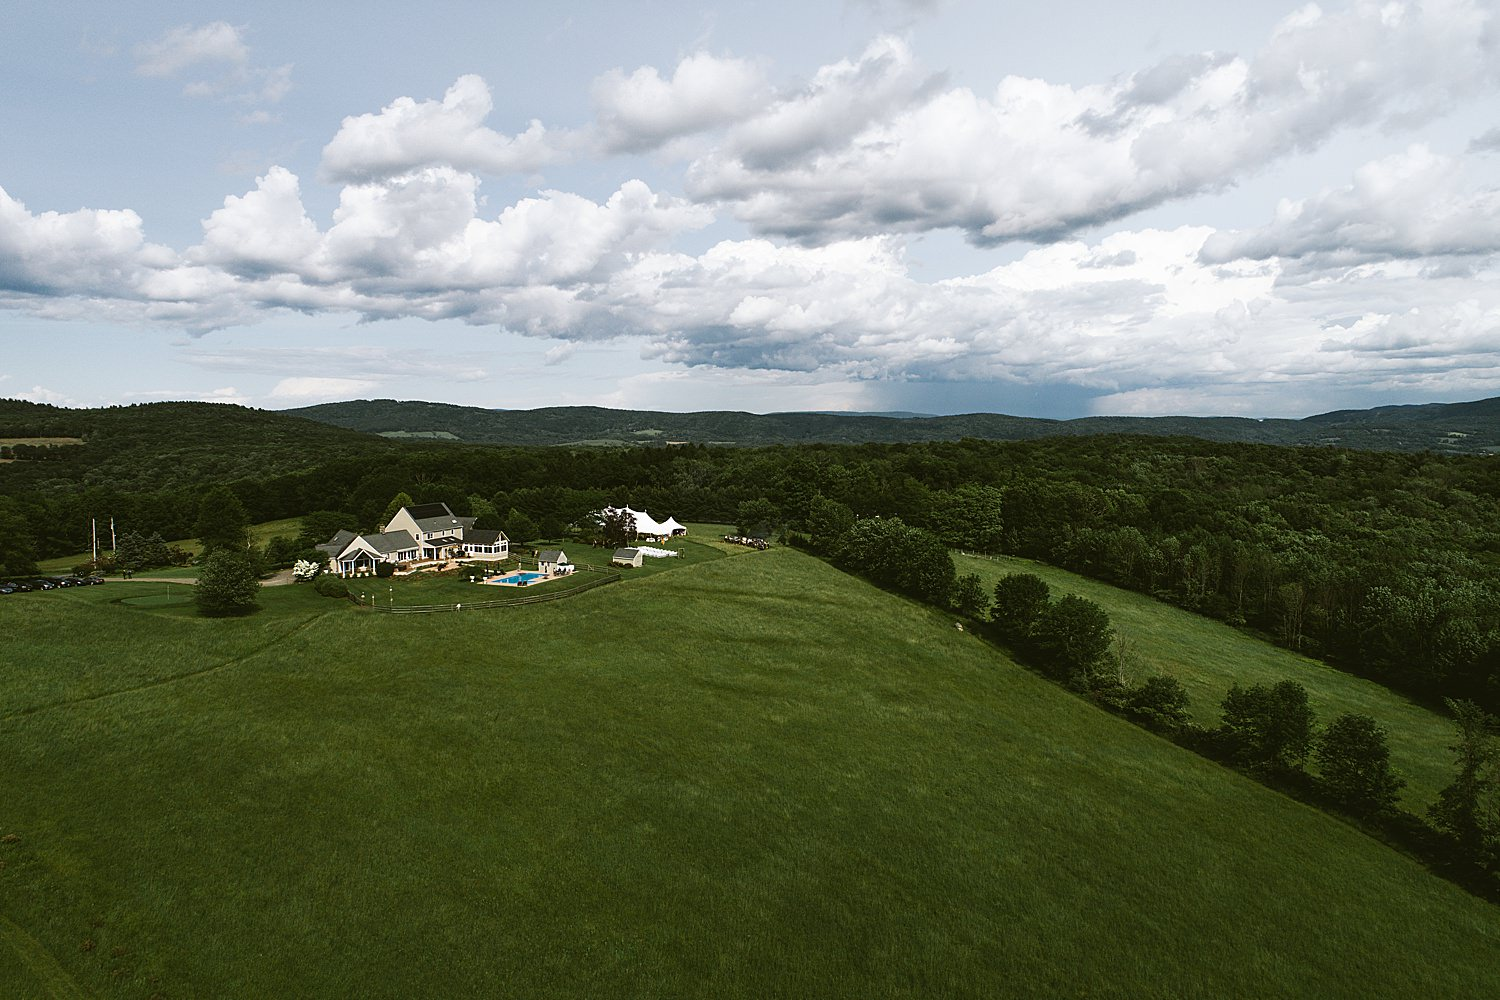 aerial image of wedding venue